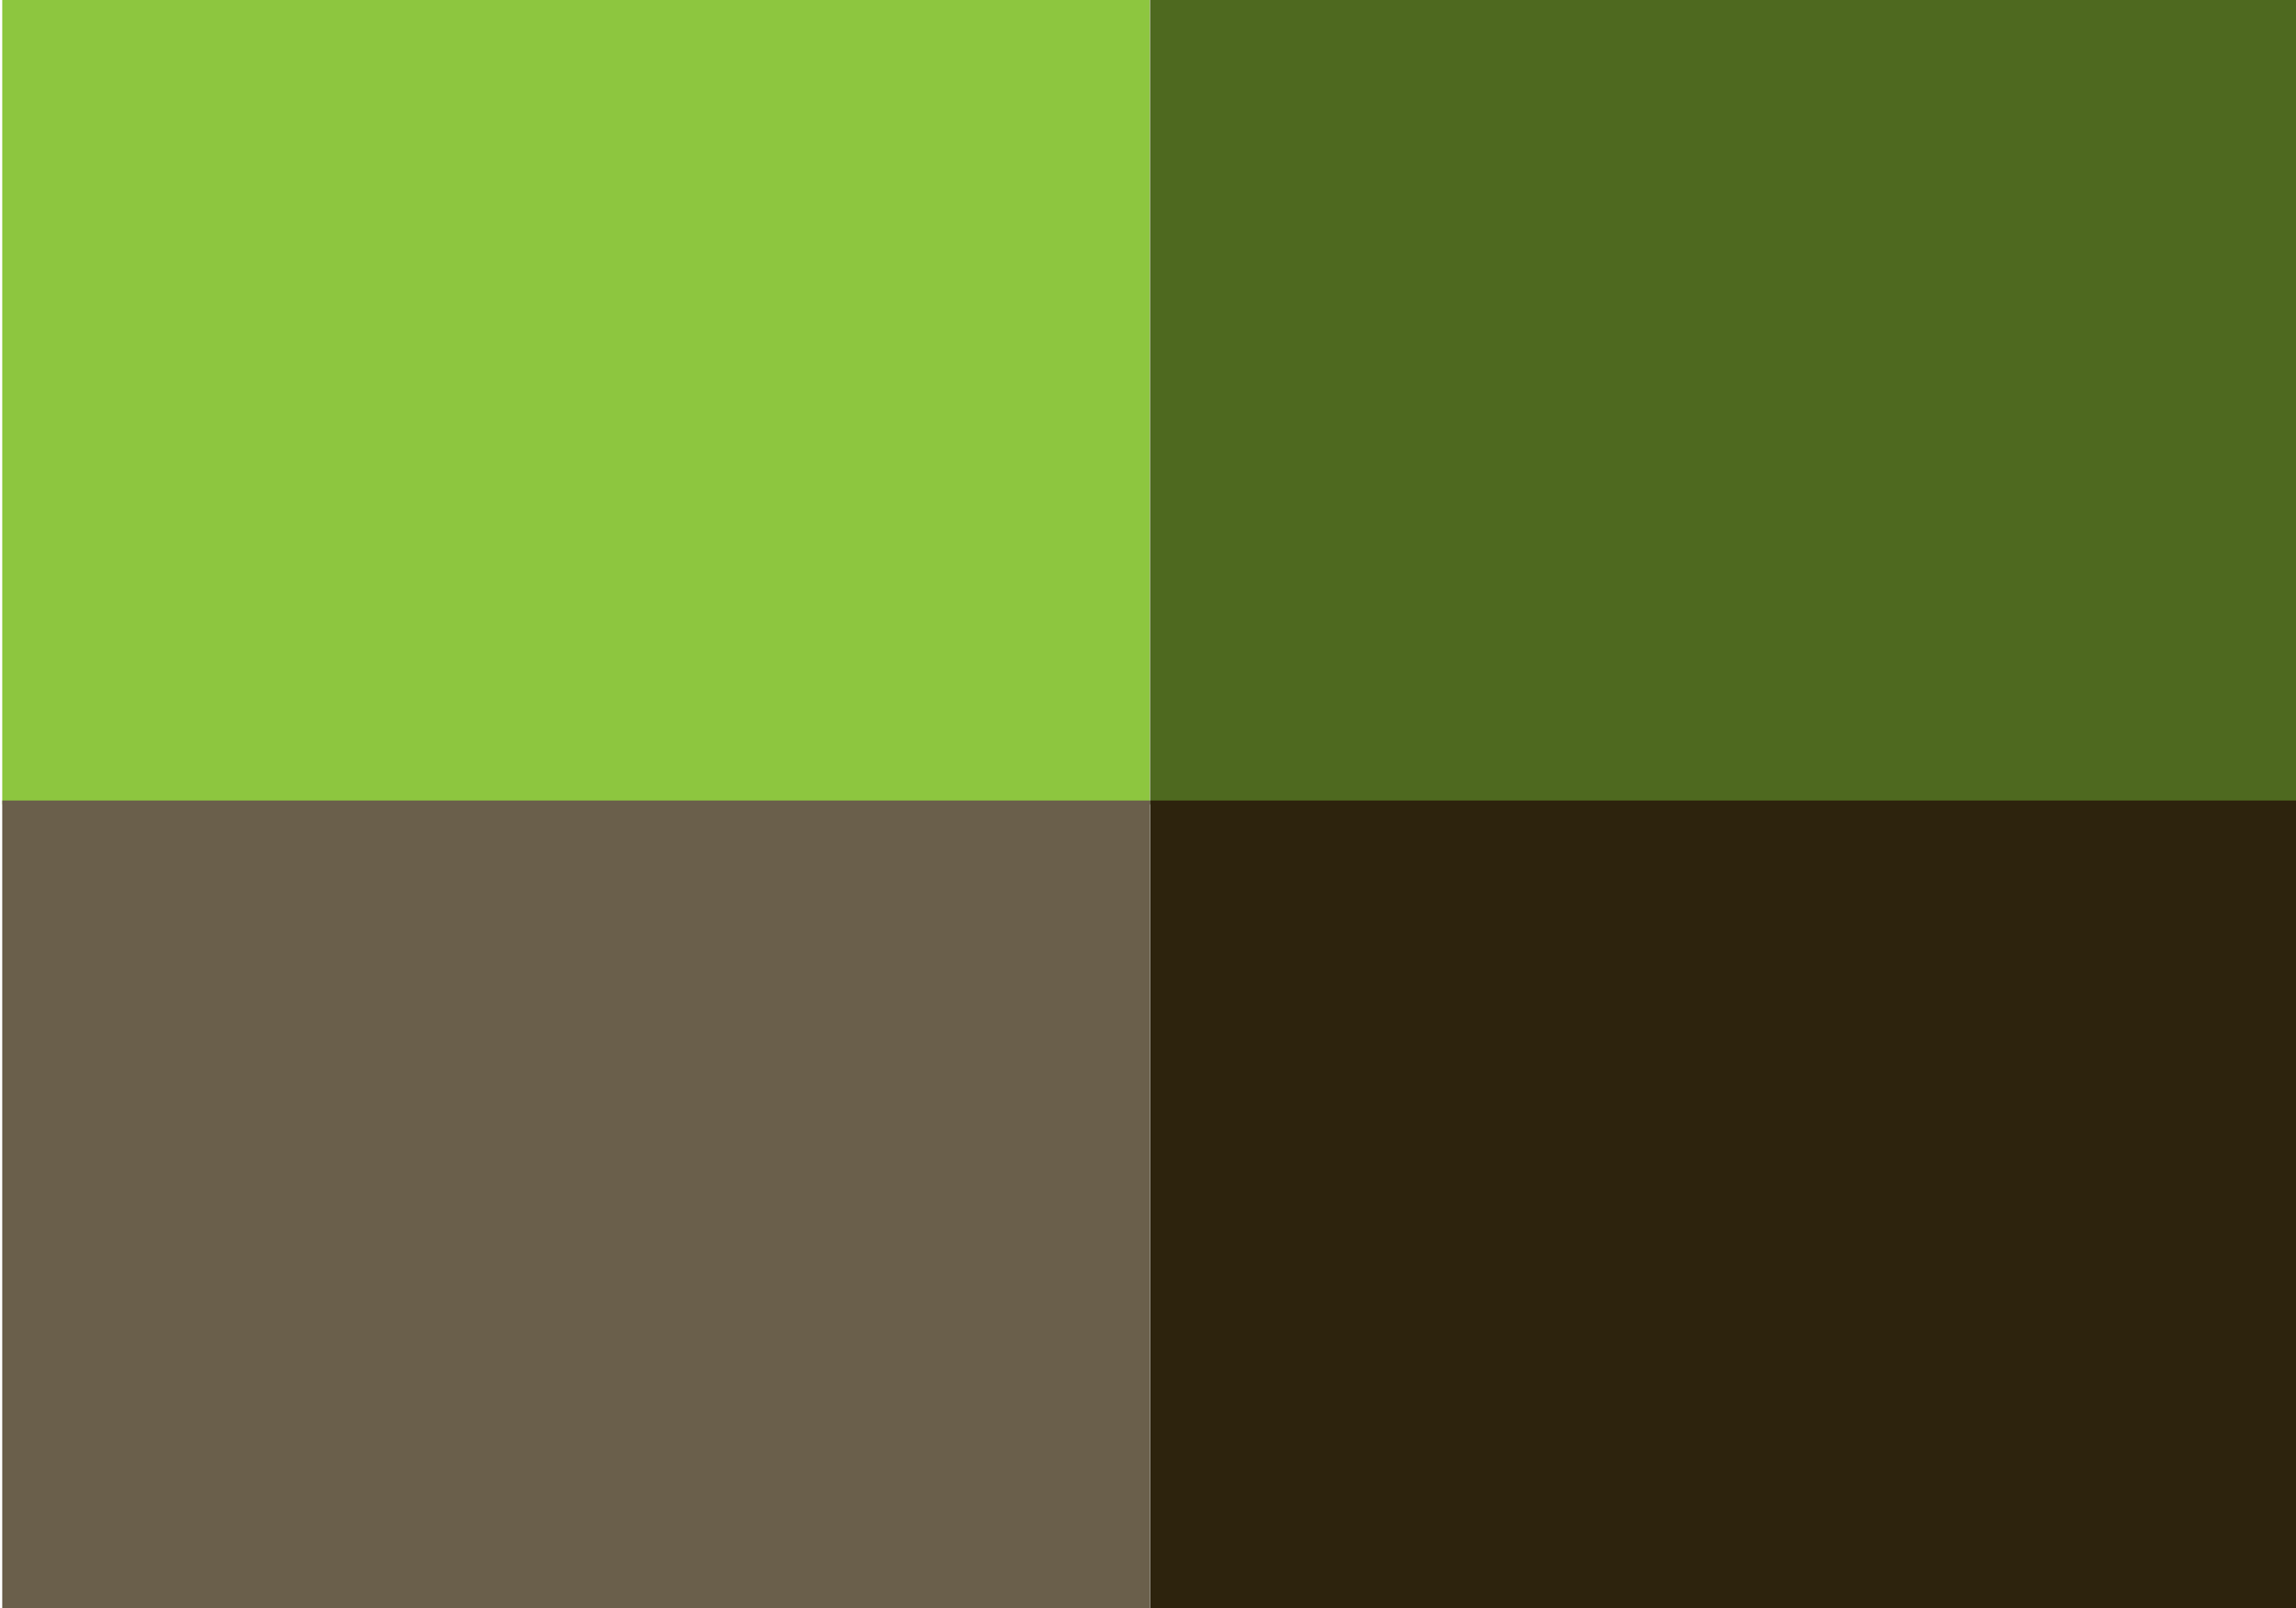 RSI brand color palette